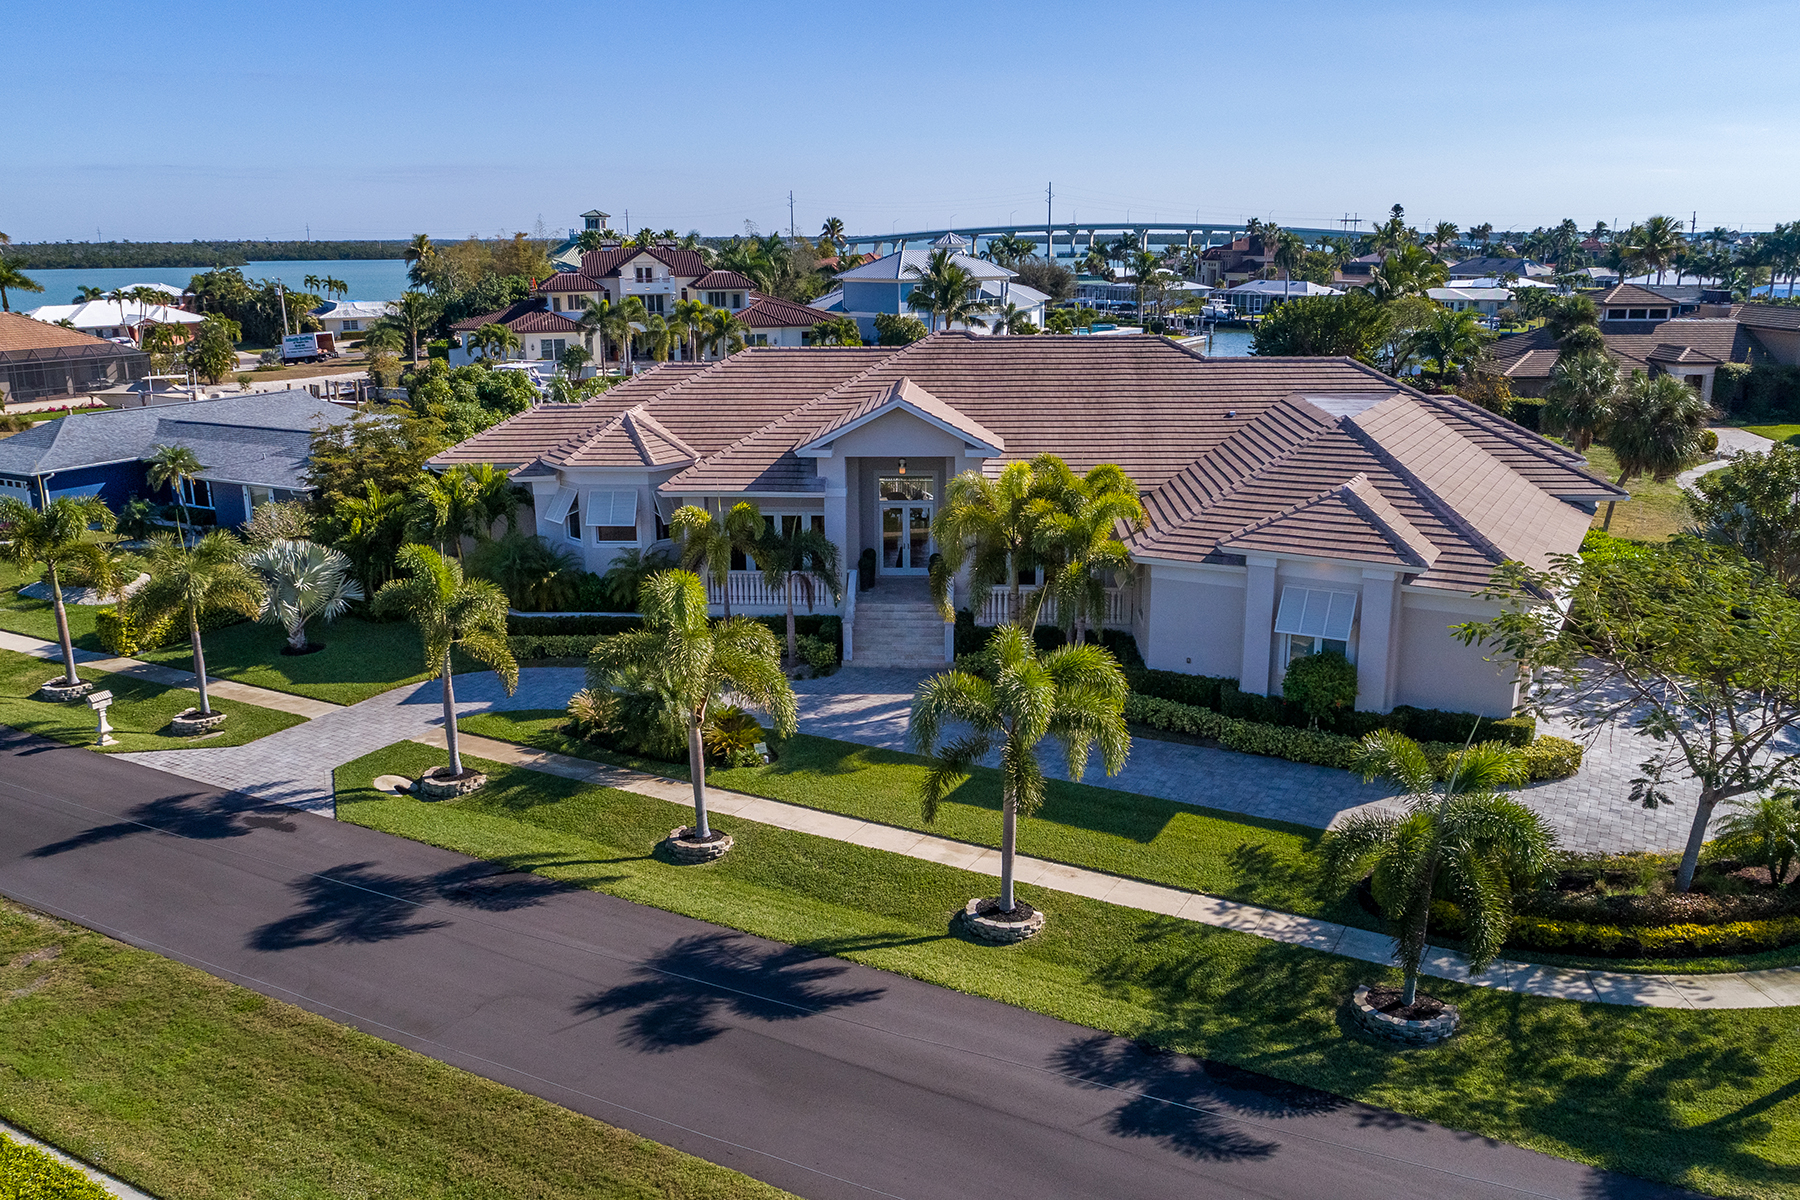 Single Family Homes for Sale at MARCO ISLAND 1231 Laurel Court Marco Island, Florida 34145 United States